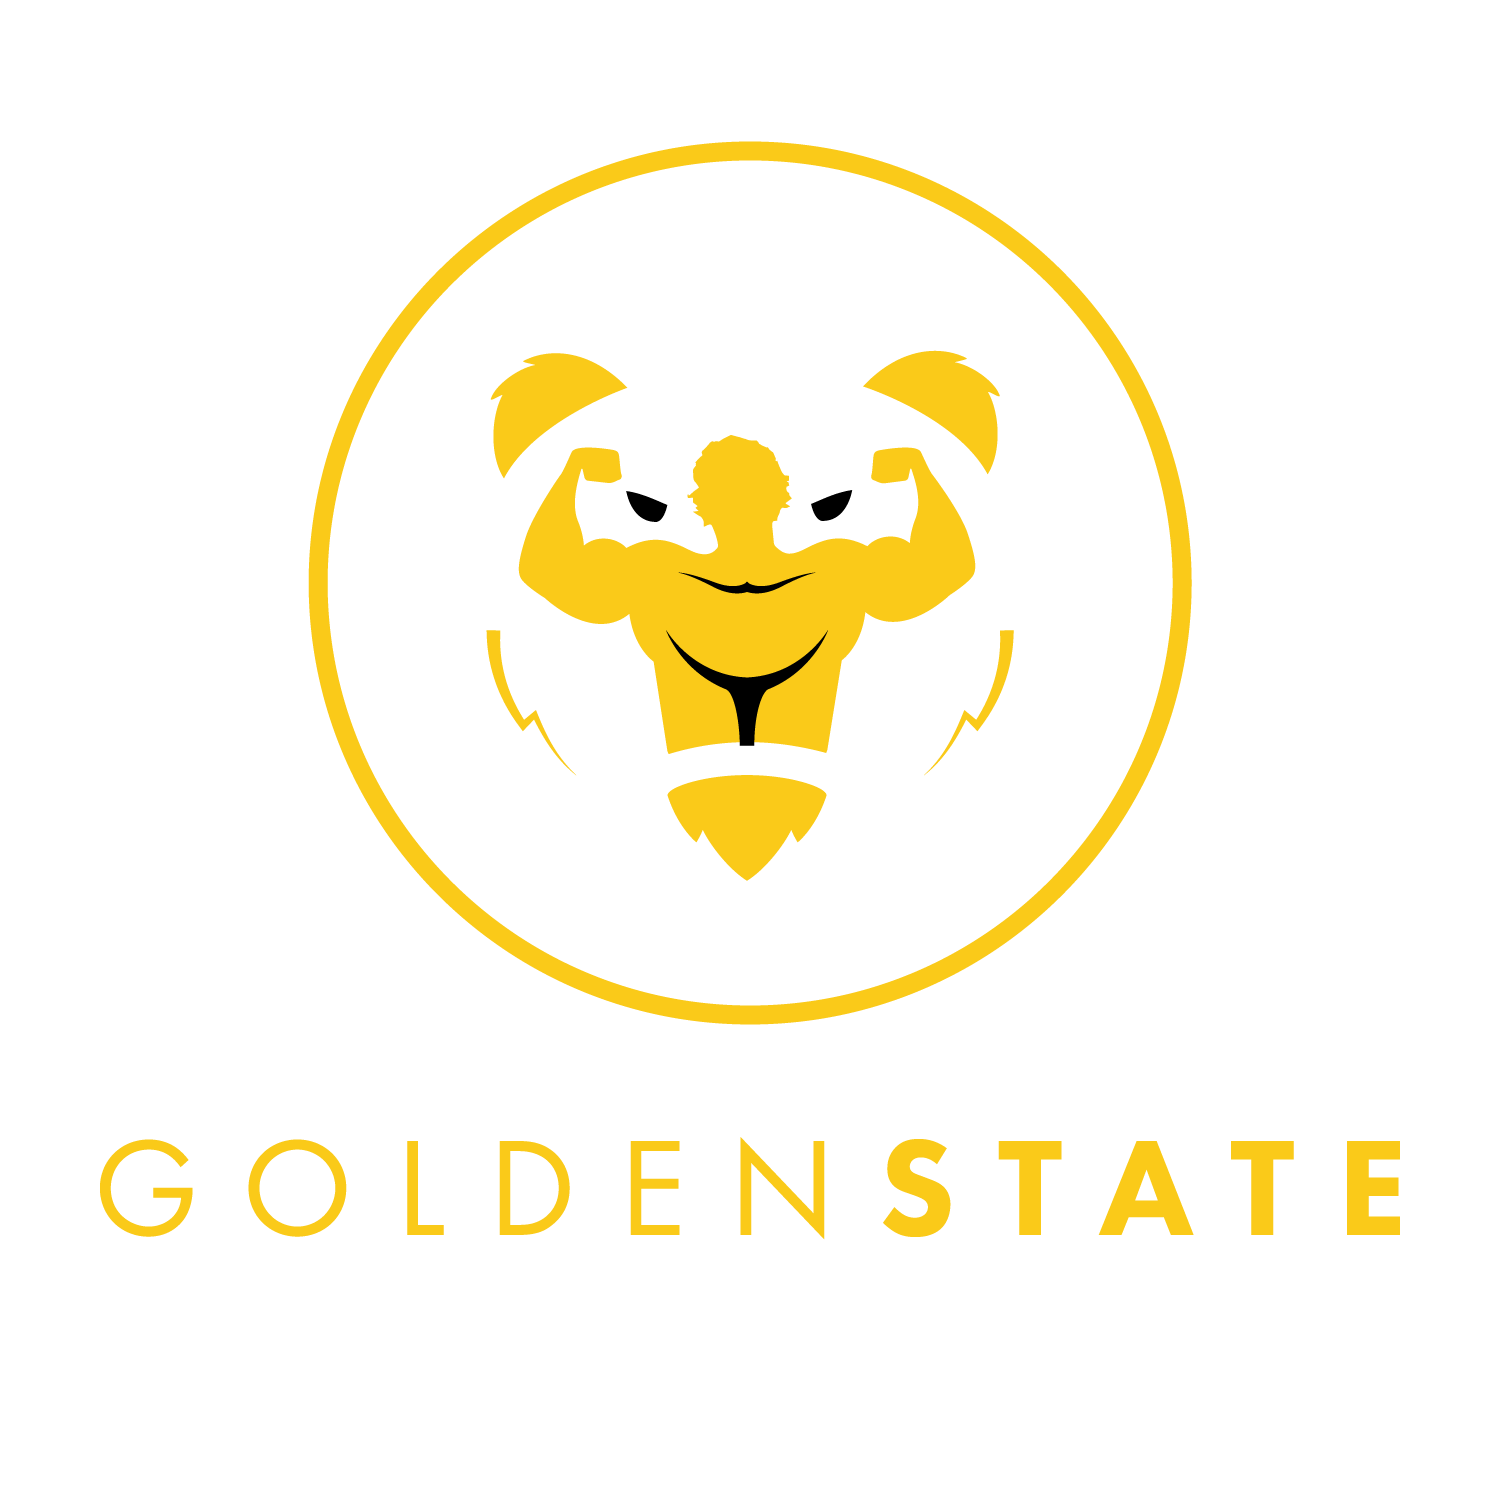 GSFP Personal Trainers -  East Bay Area: Oakland, Piedmont, Montclair, CA